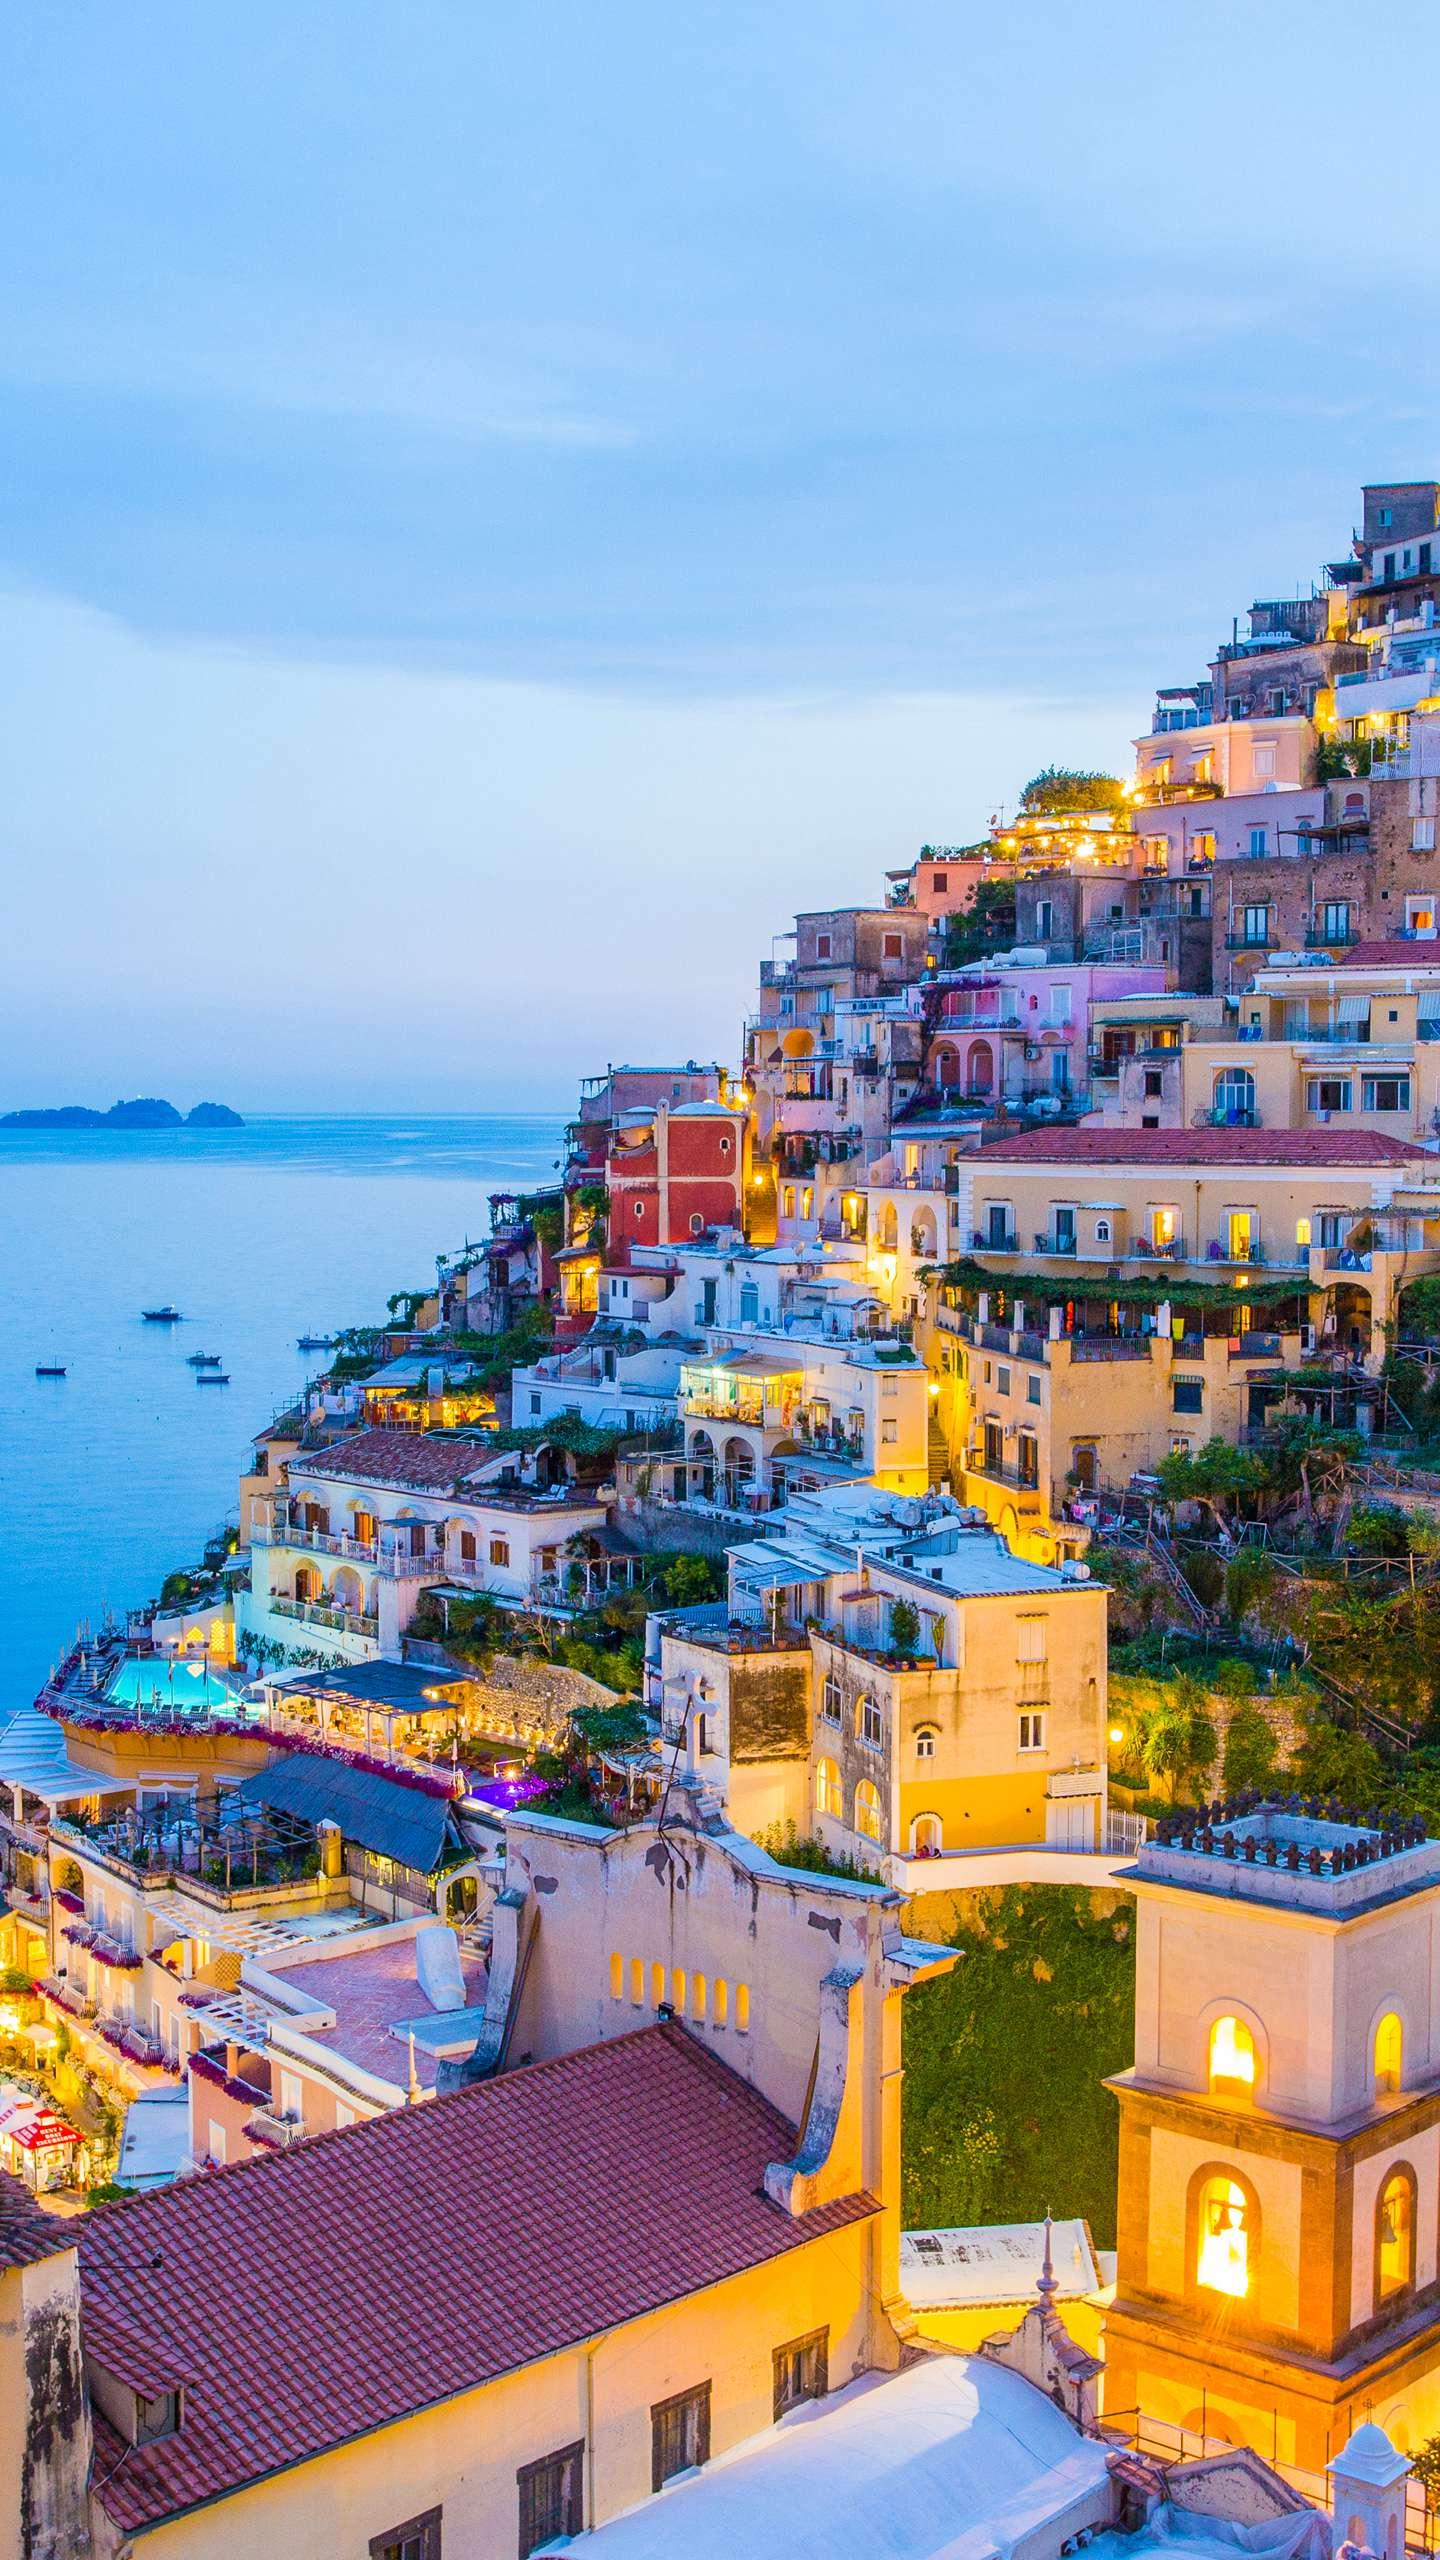 Italy - Positano. The houses in the small town are covered on a cliff. They are small and exquisite, and they are beautifully contrasted with the blue water.